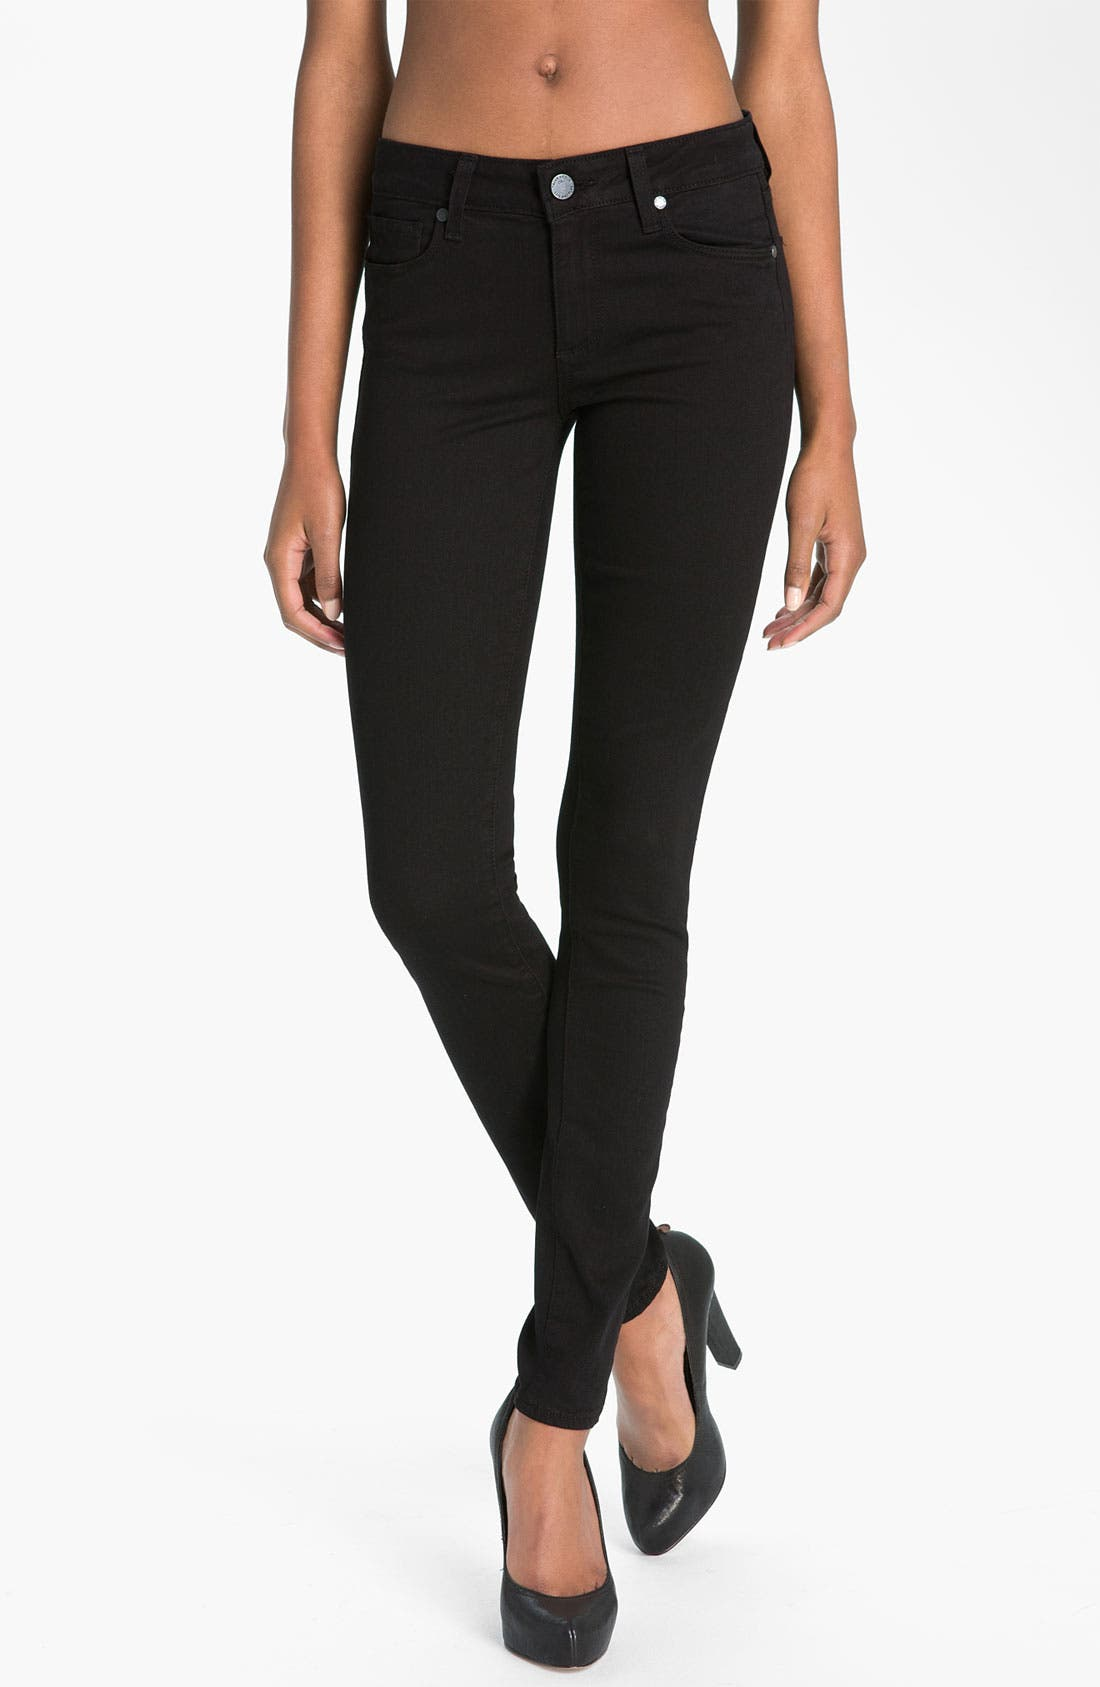 Alternate Image 1 Selected - Paige Denim 'Verdugo' Stretch Denim Leggings (Vinyl)